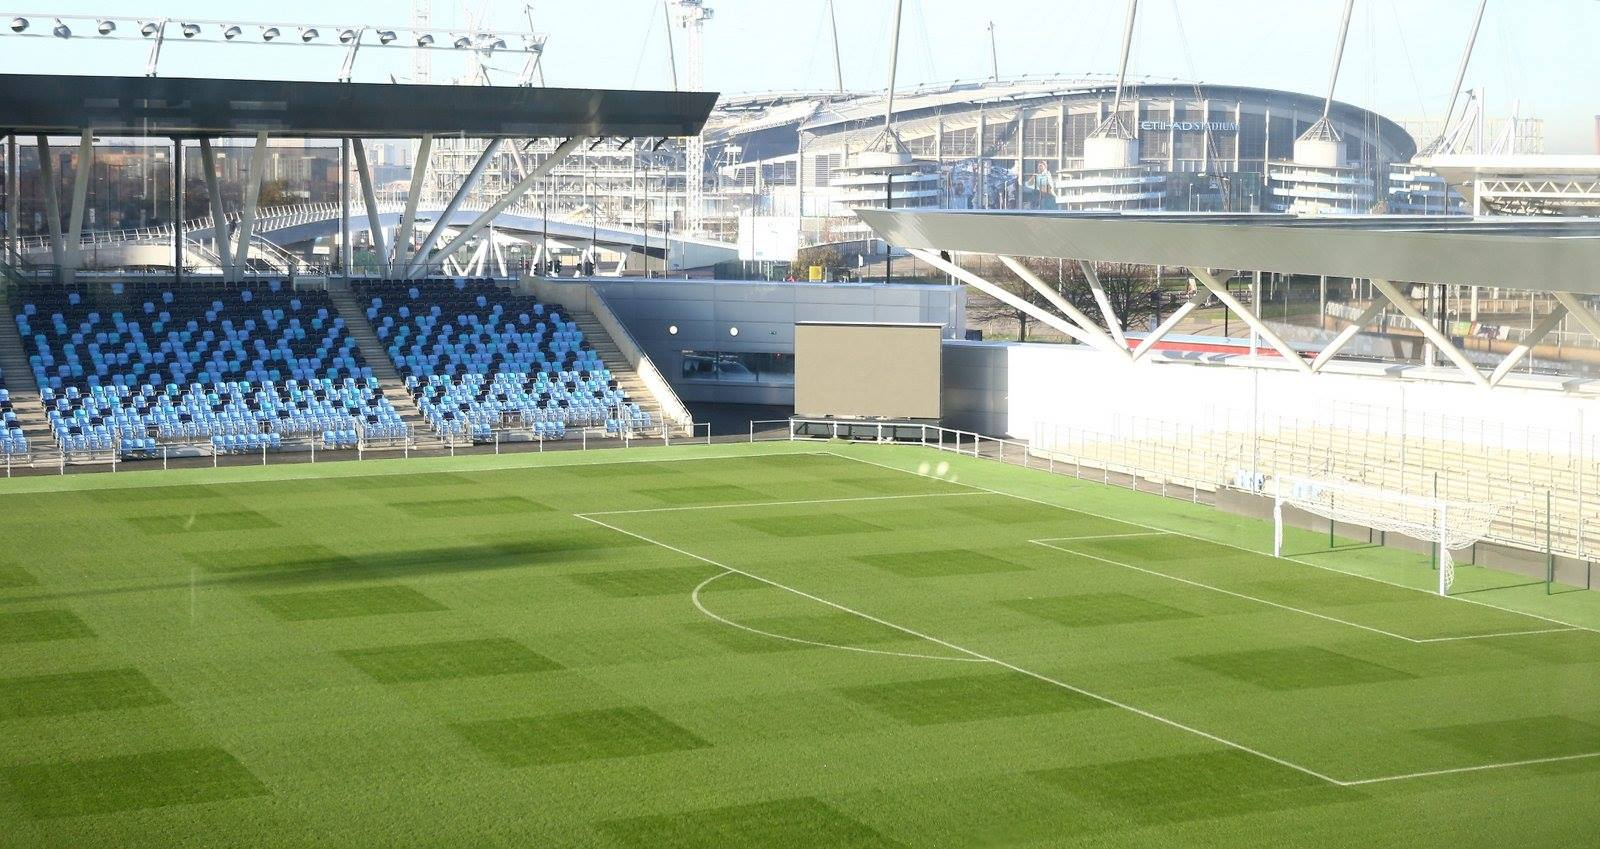 Manchester City Football Academy Stadium Stadiumdb Com